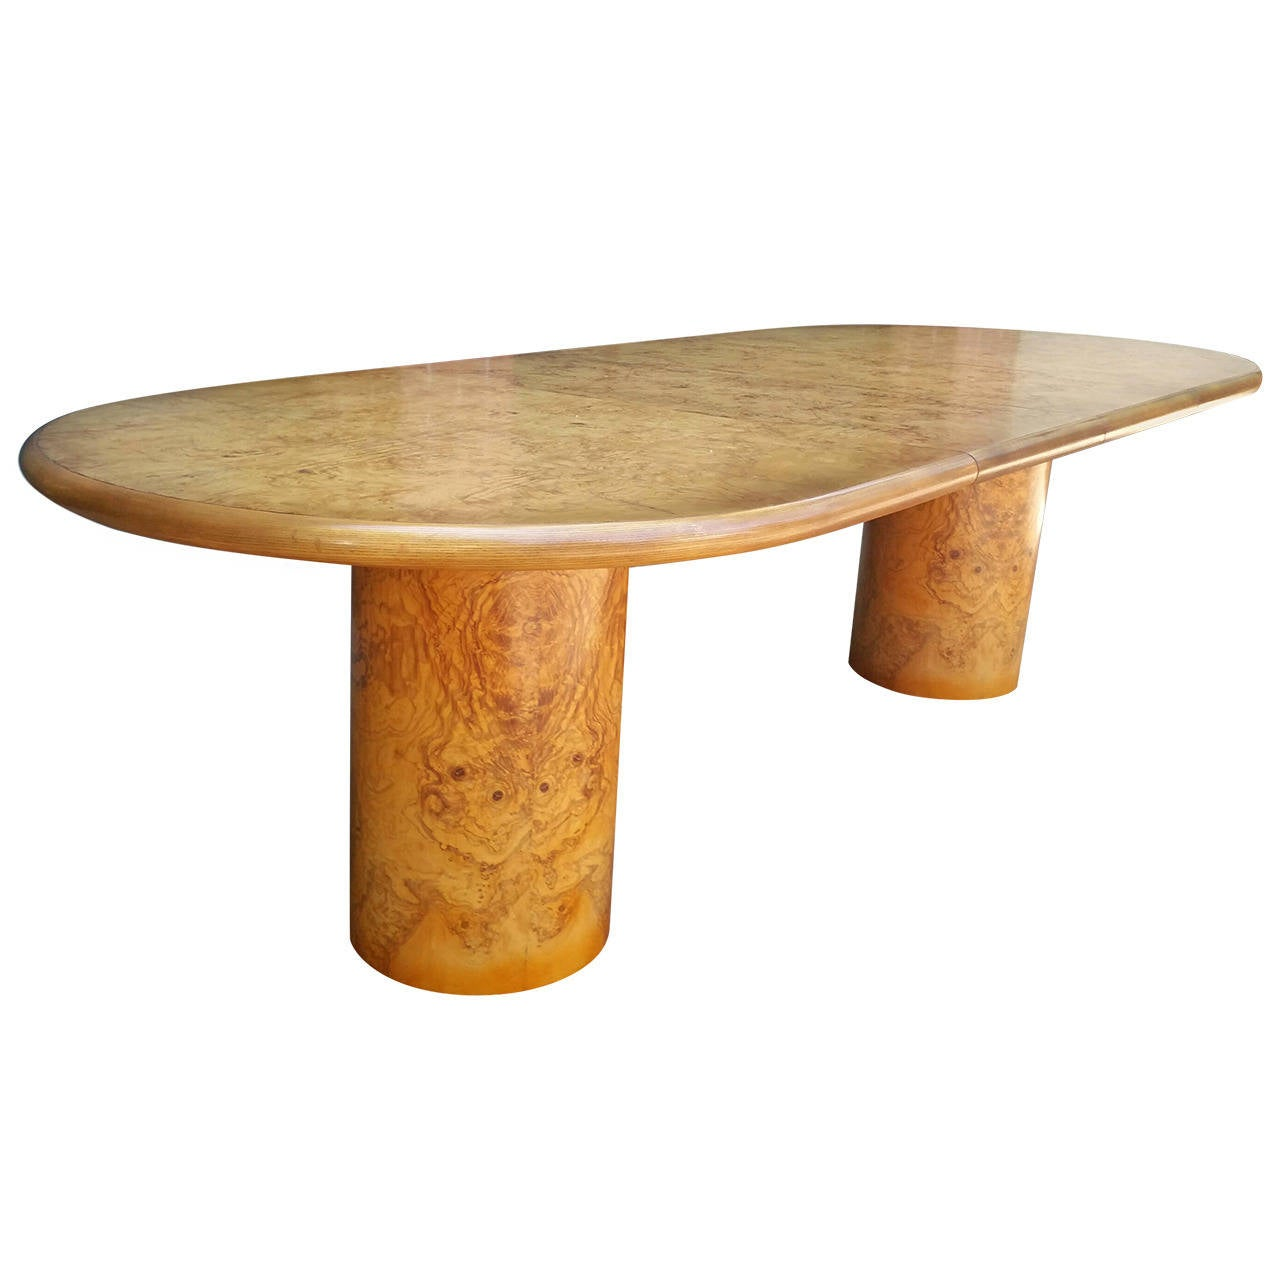 Modernist Burl Olivewood Dining Table by Henredon For Sale